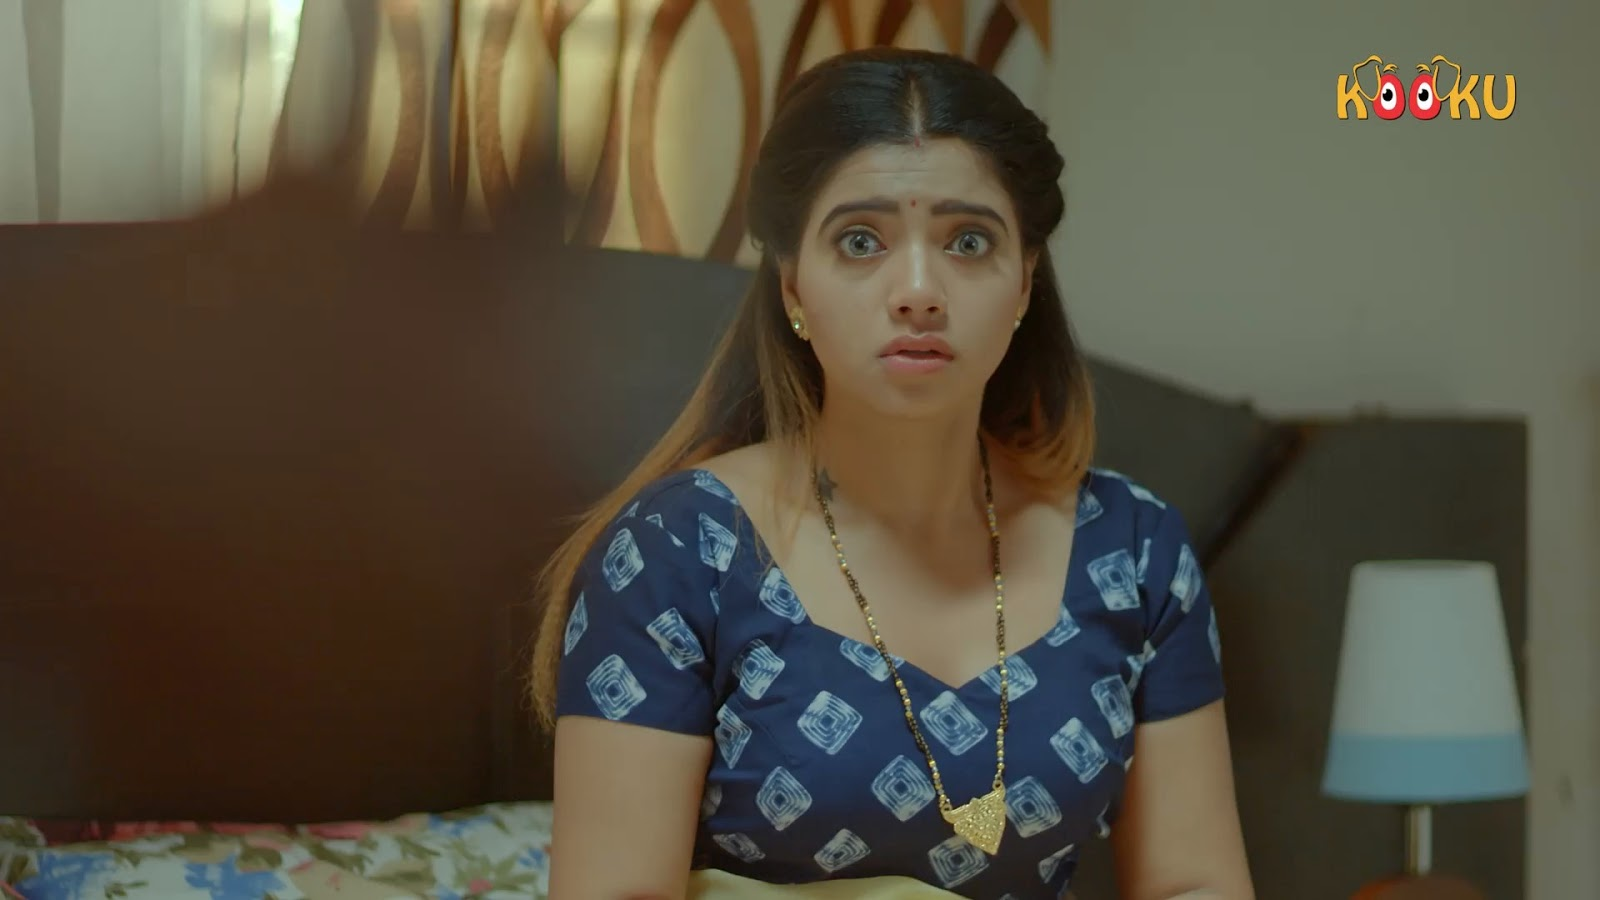 Golden Hole Movie Watch Online For Free On Kooku